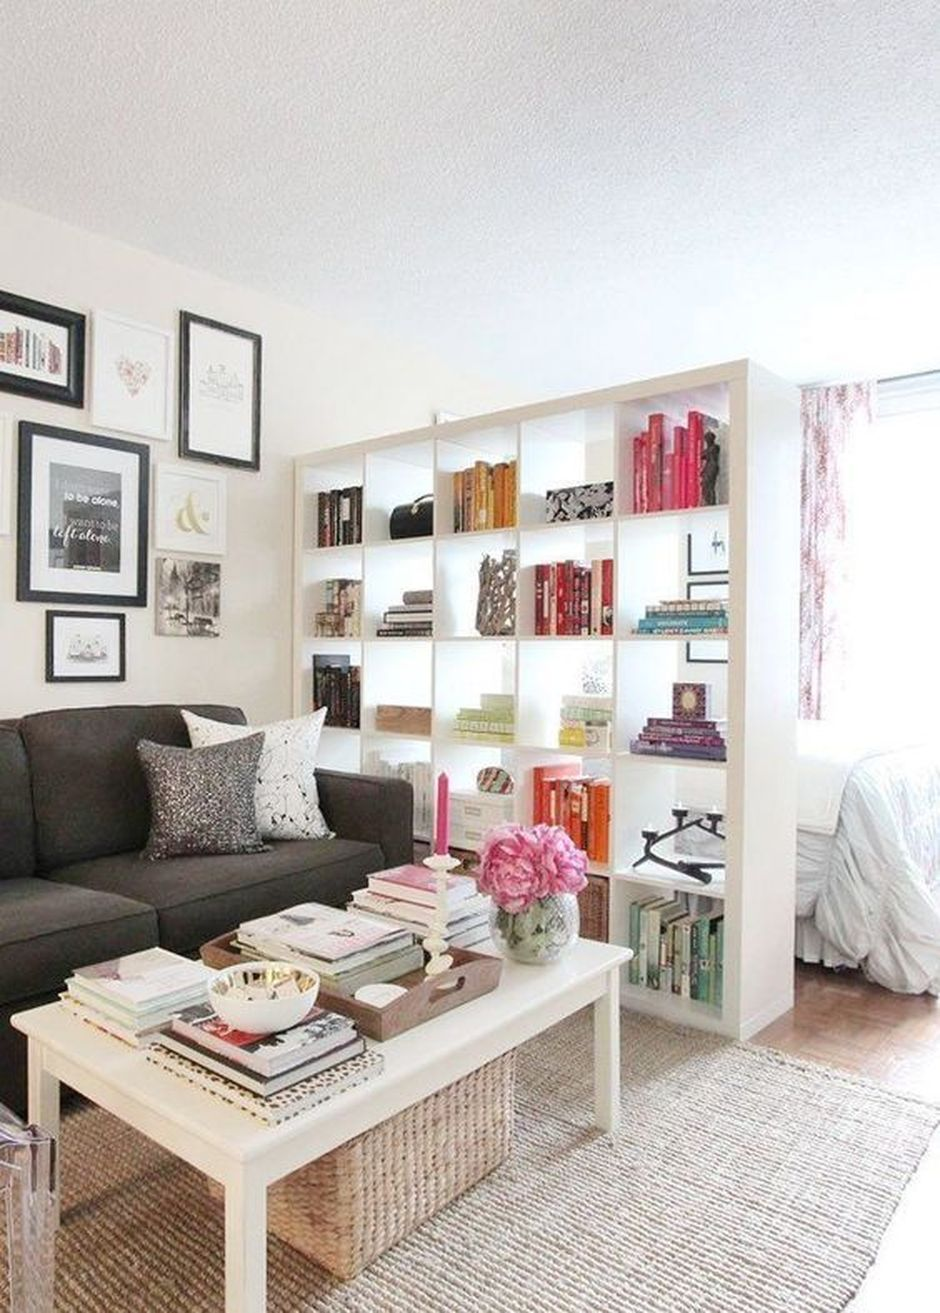 80 Incredible Room Dividers and Separators With Selves Ideas 4